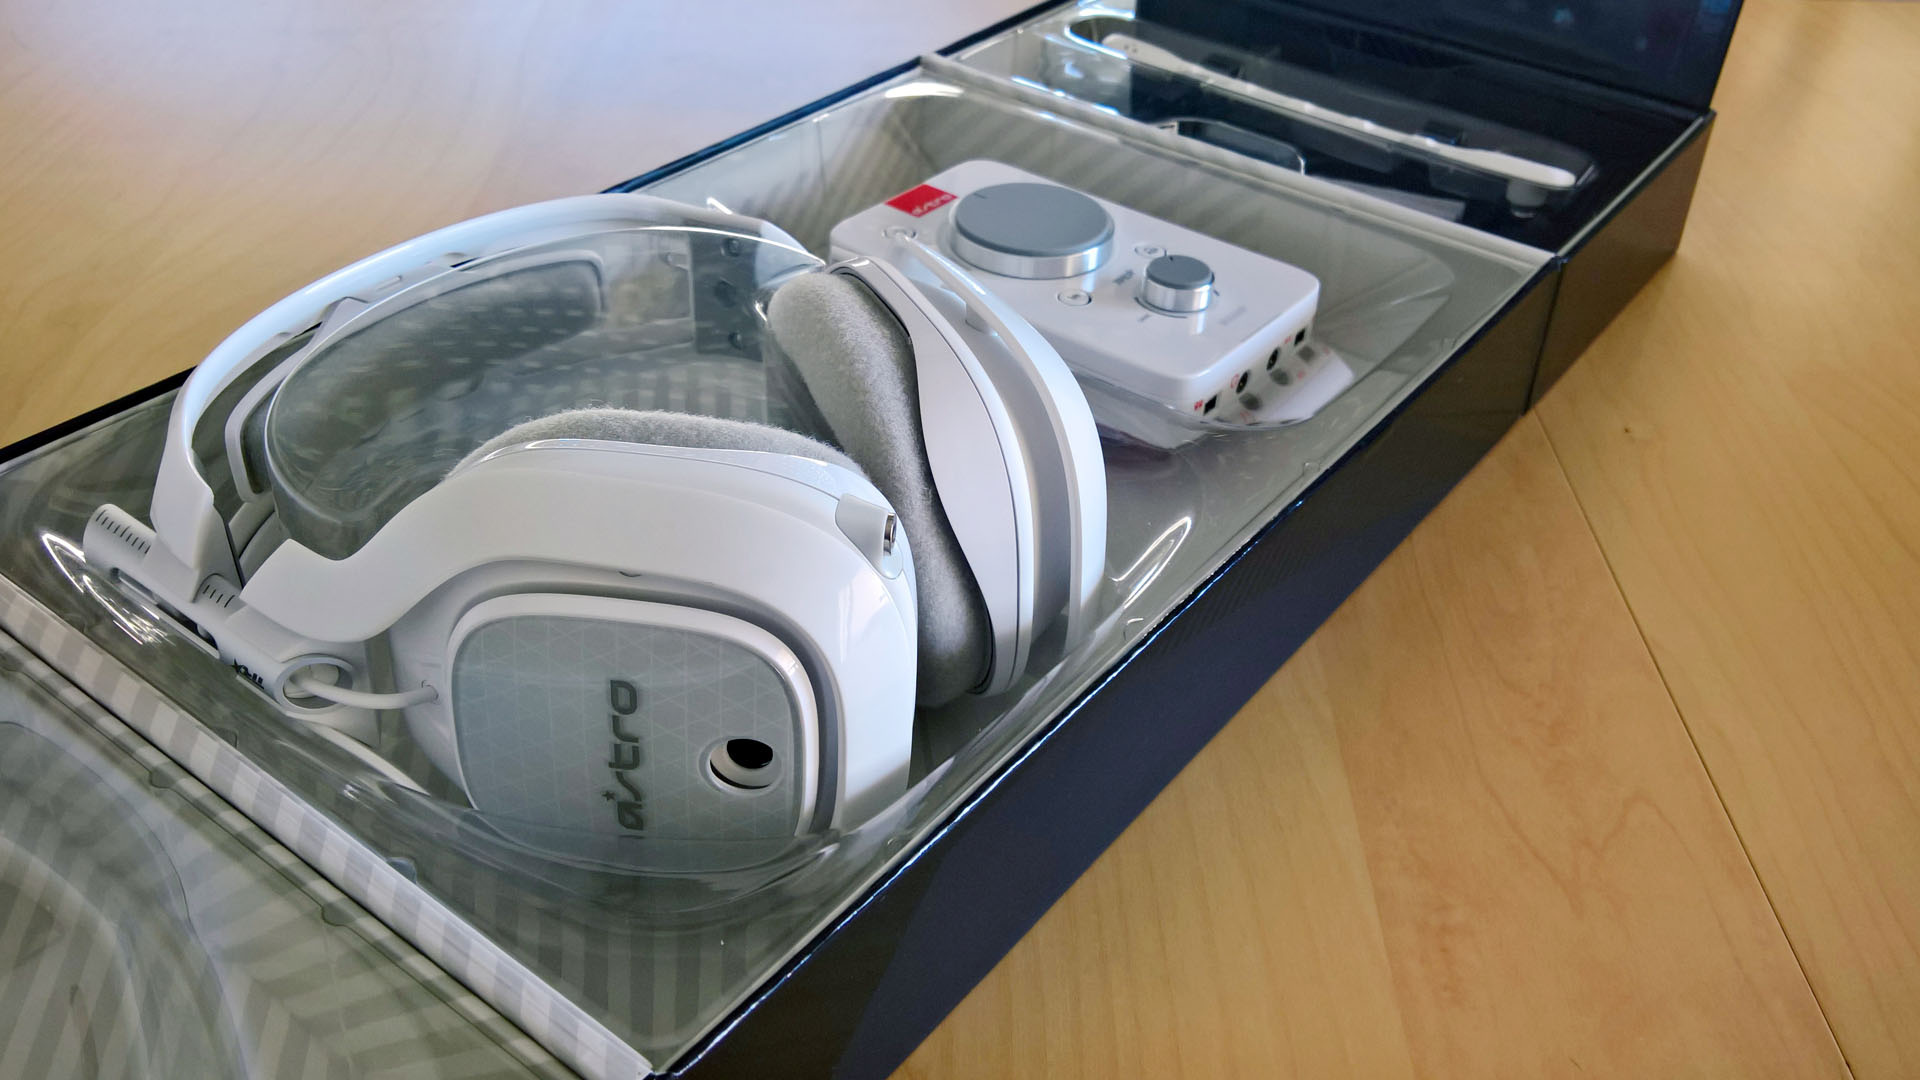 a40-tr-headset-mixamp-pro-tr-vgprofessional-review-18